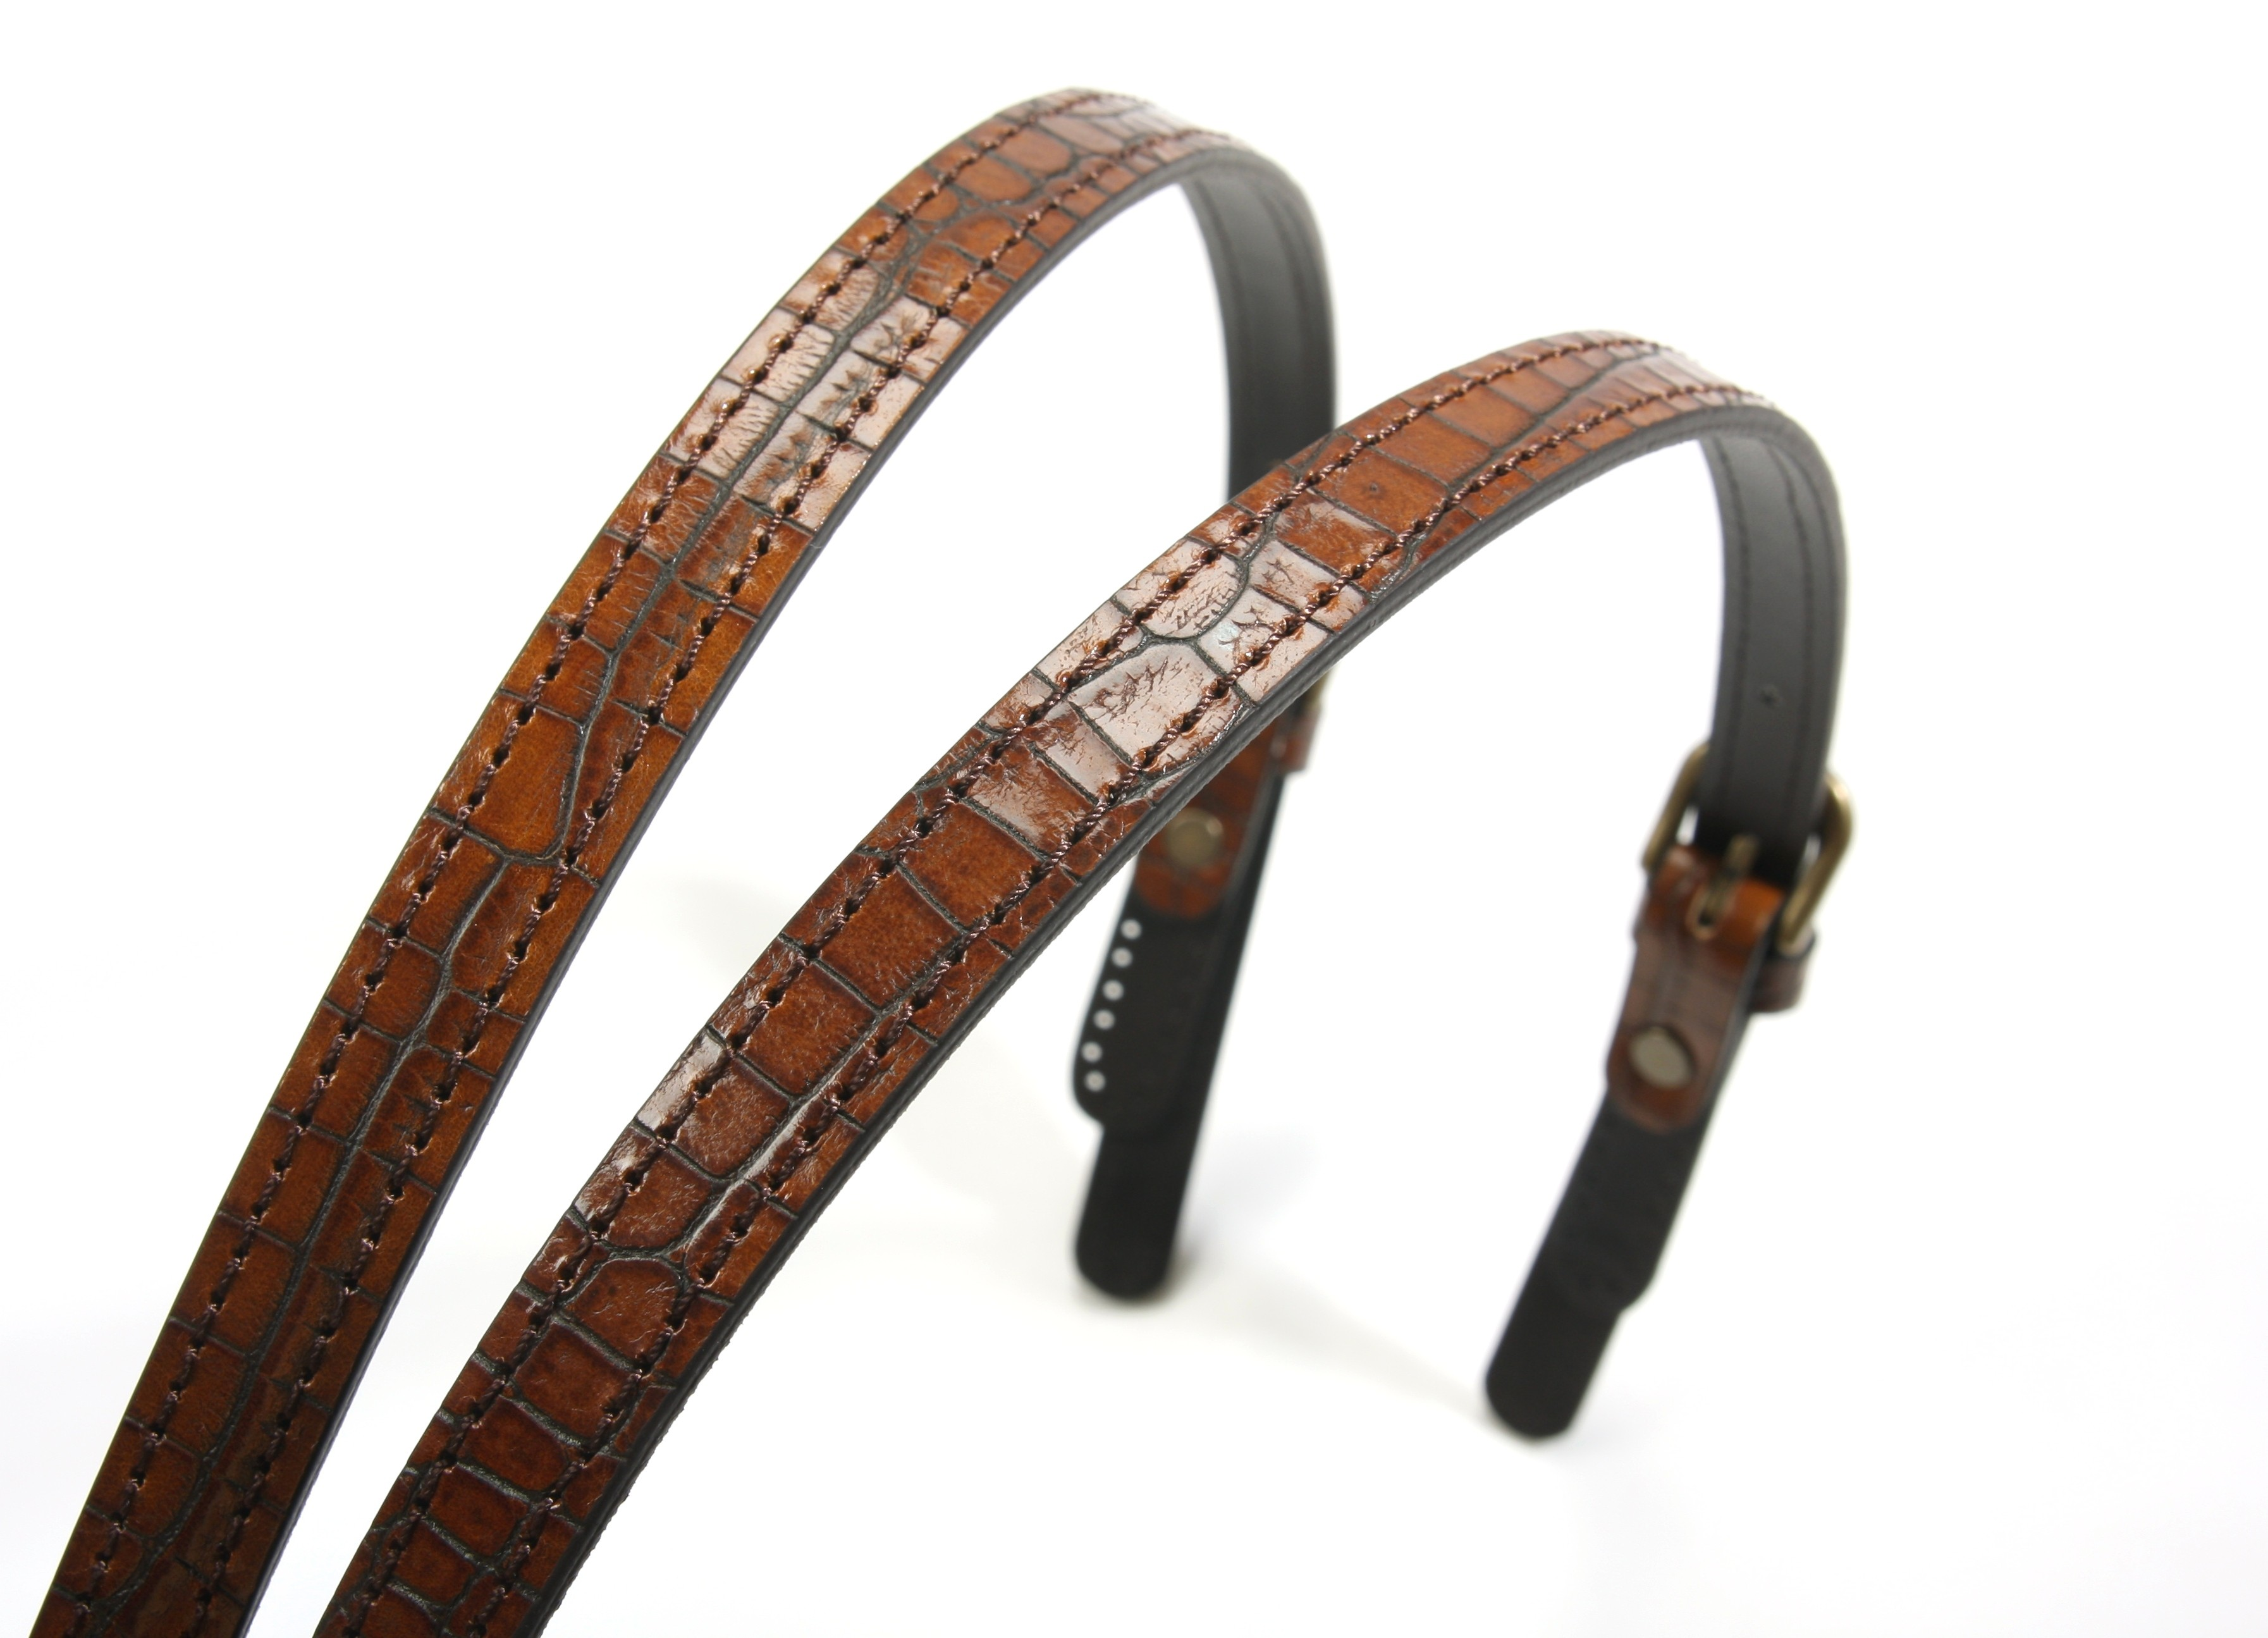 Brown 28 Bag Strap with Crocodile Pattern 30-5505 byhands Genuine Leather Purse Handles